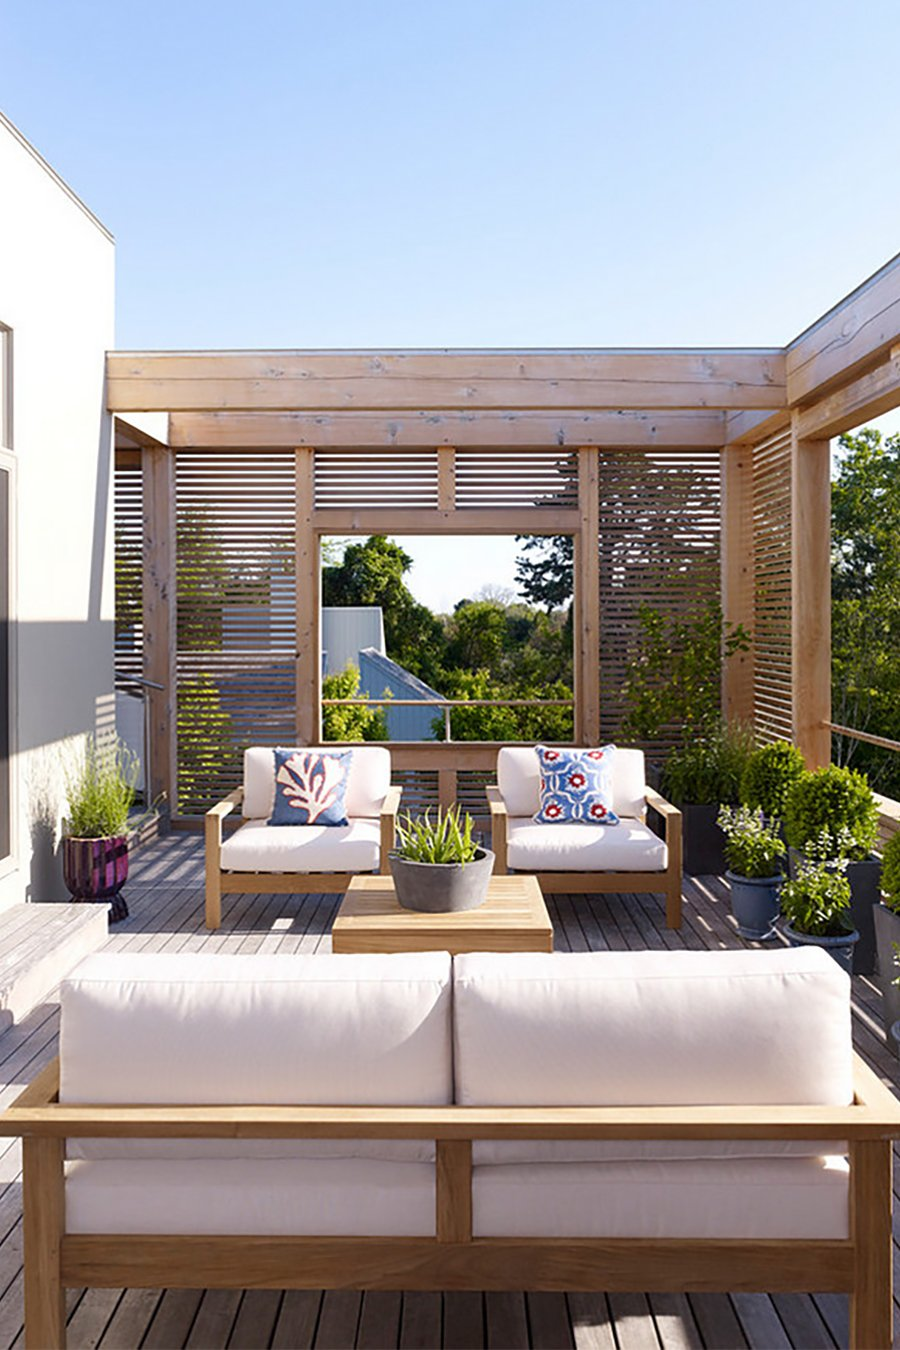 Outdoor Living - Dreamy Pergola Ideas for Our Deck